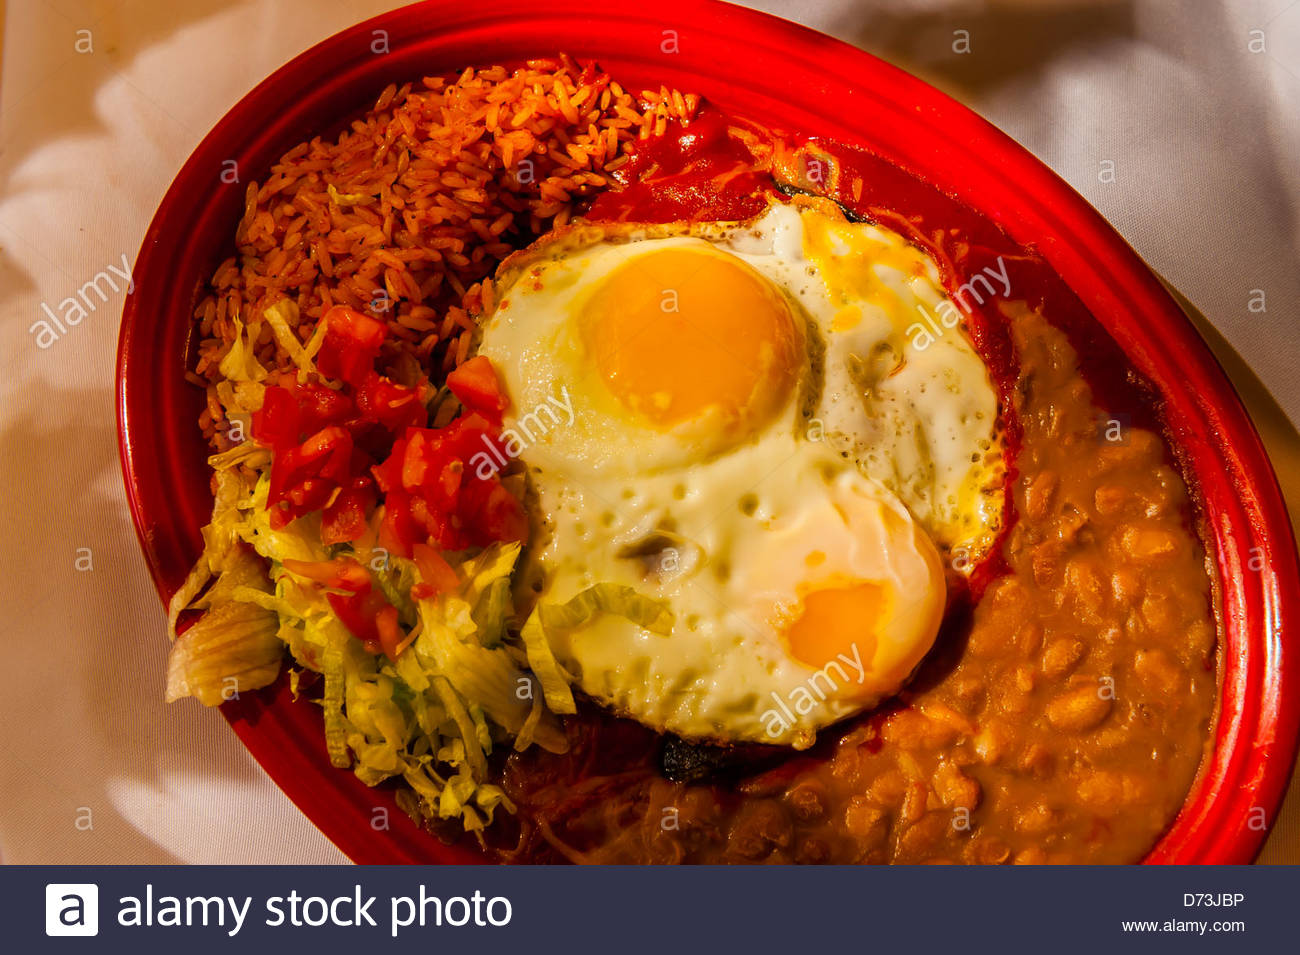 Blue Corn Enchiladas with red chile with egg, El Pinto Restaurant and Cantina, Albuquerque, New Mexico USA Stock Photo